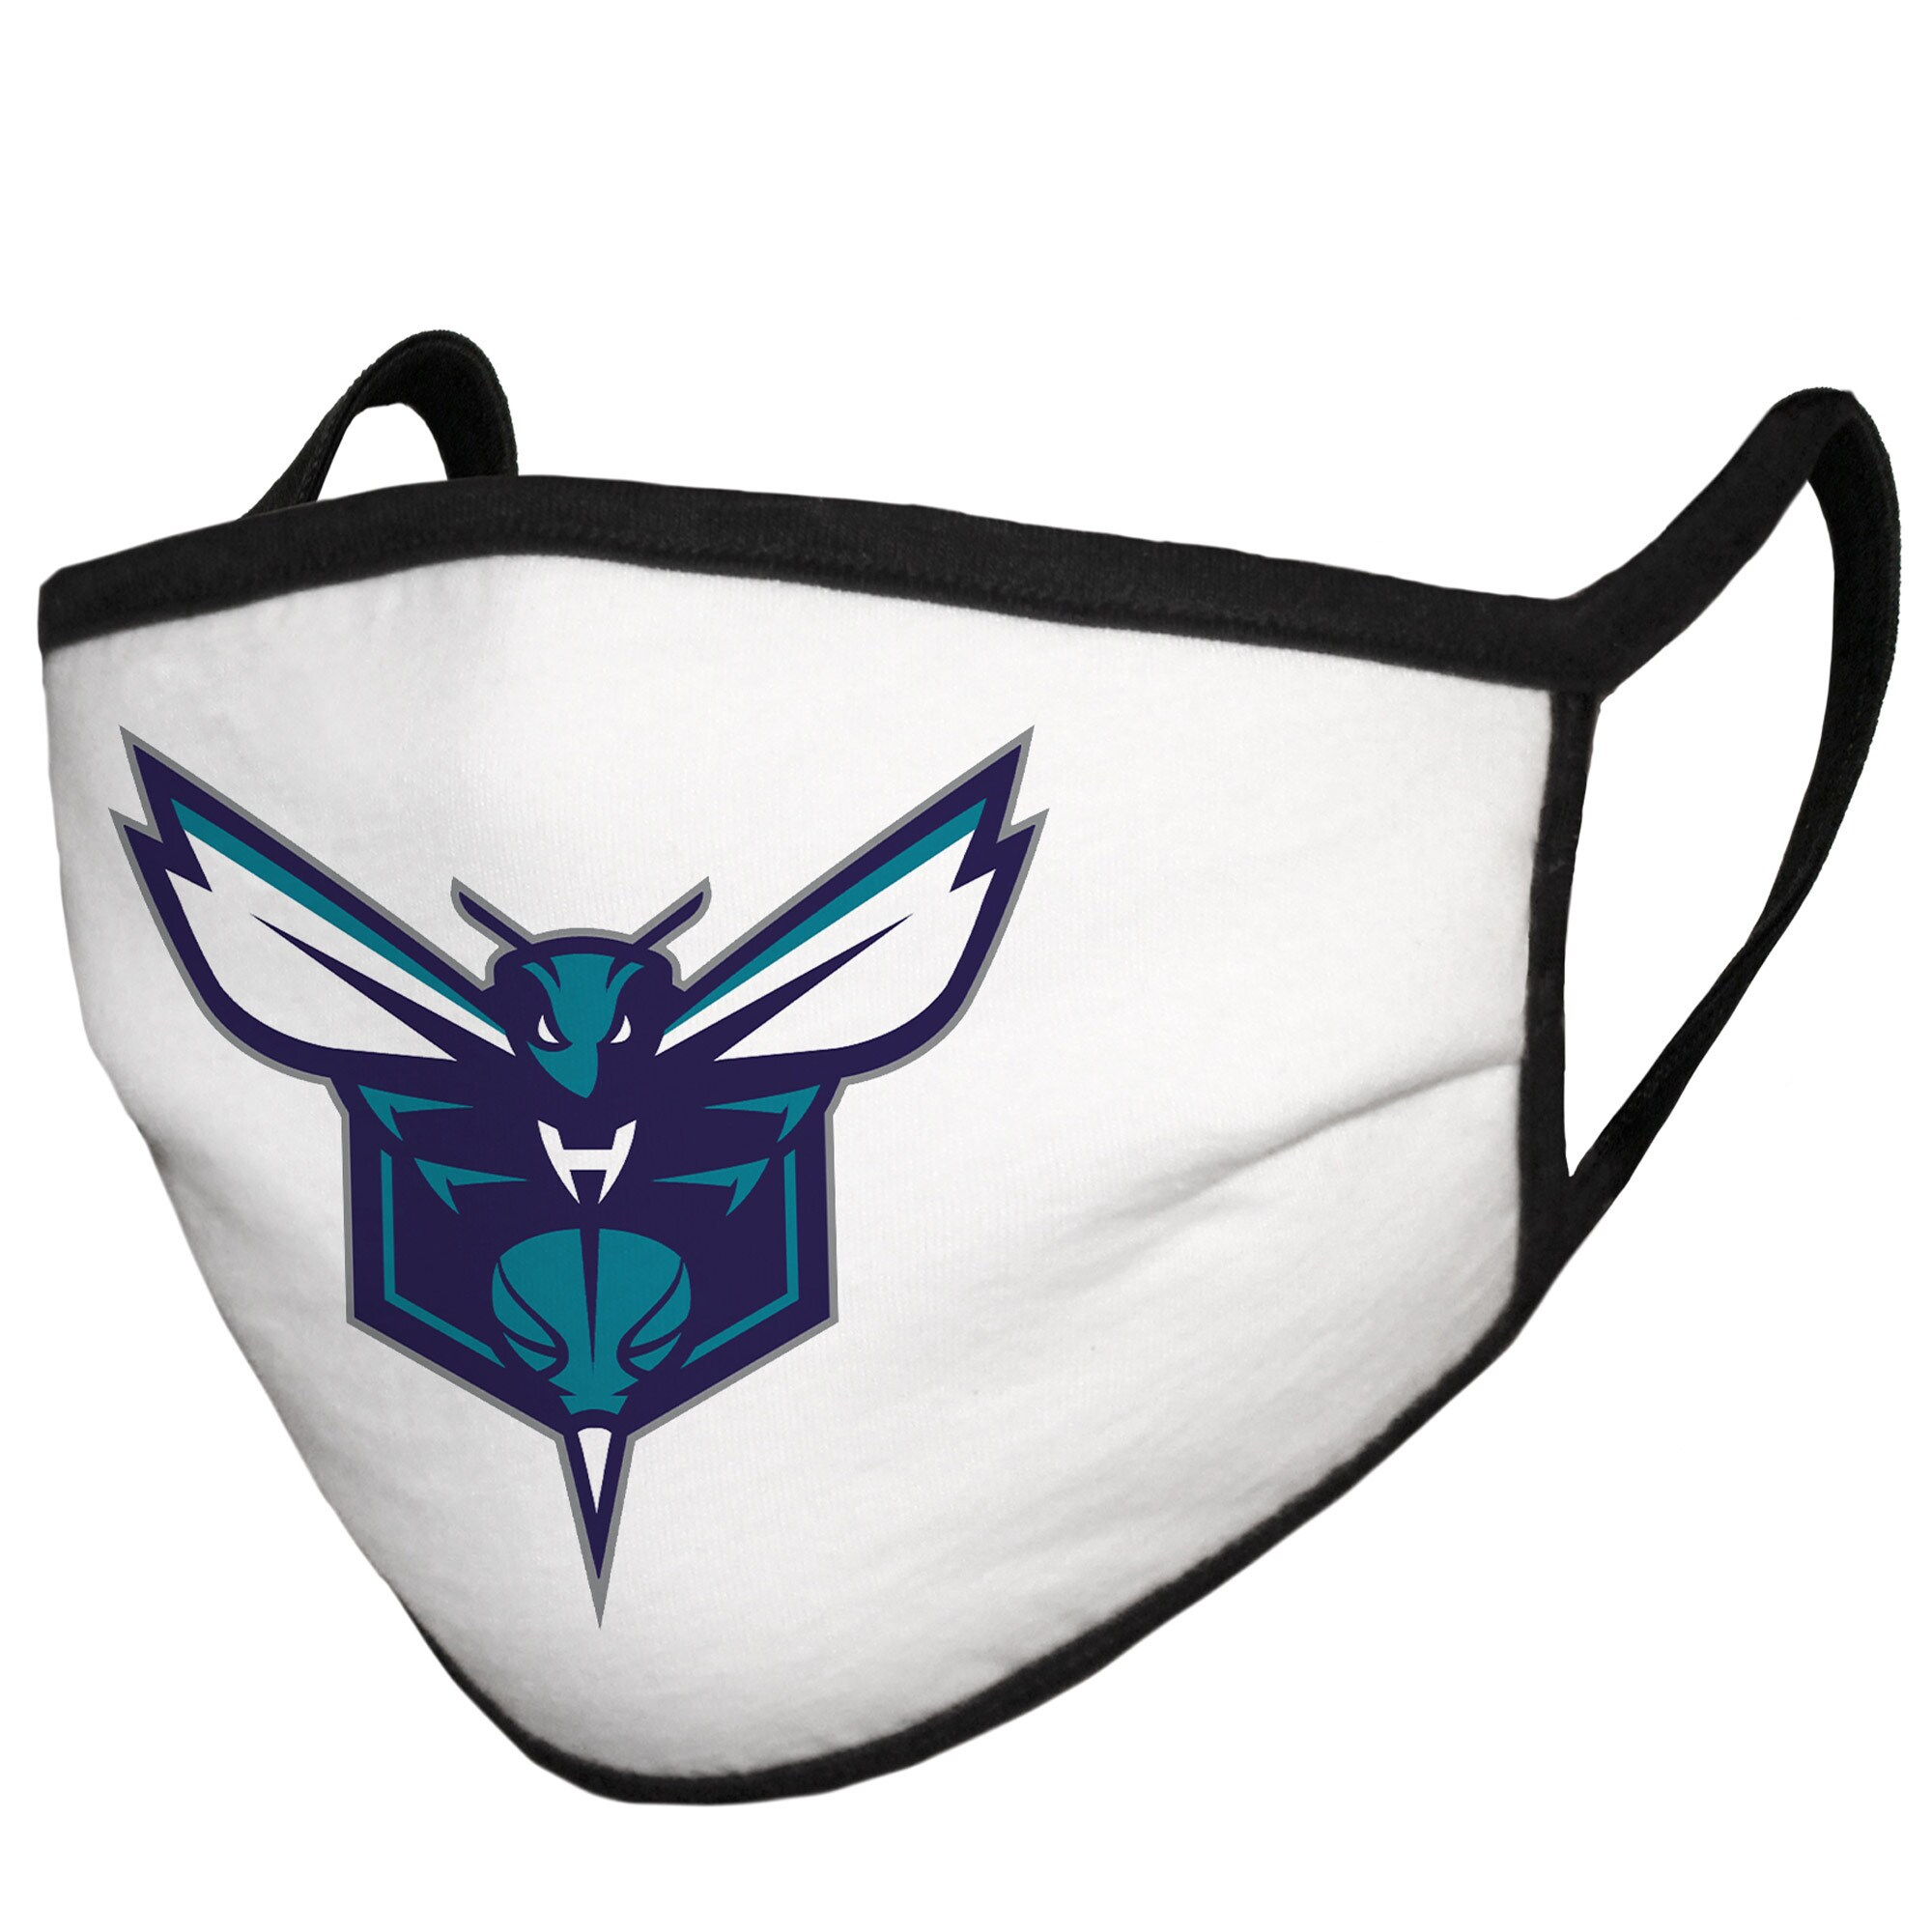 Charlotte Hornets Fanatics Branded Cloth Face Covering (Size Small) - MADE IN USA